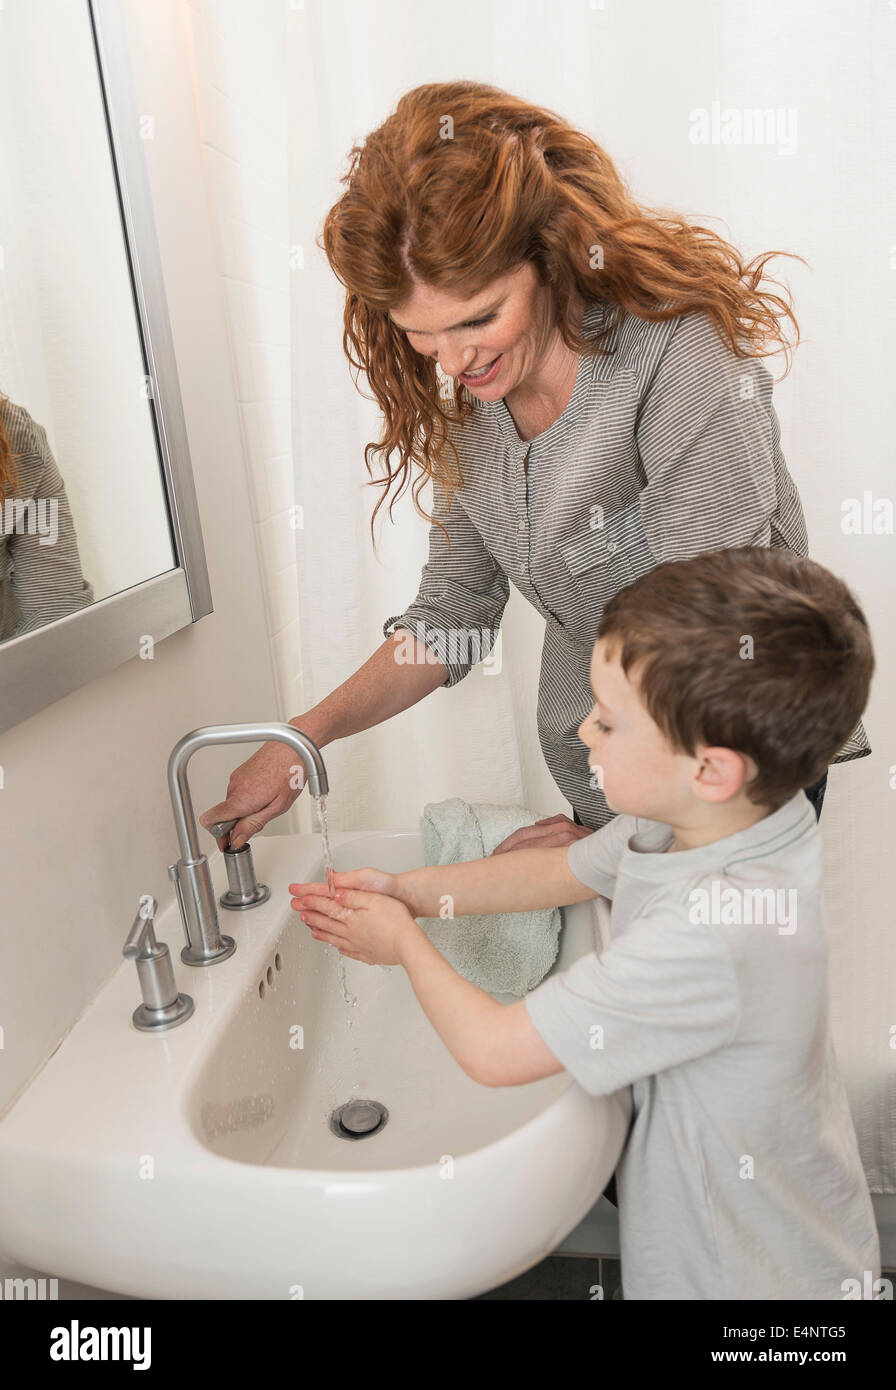 Son (6-7) and mother washing hands - Stock Image